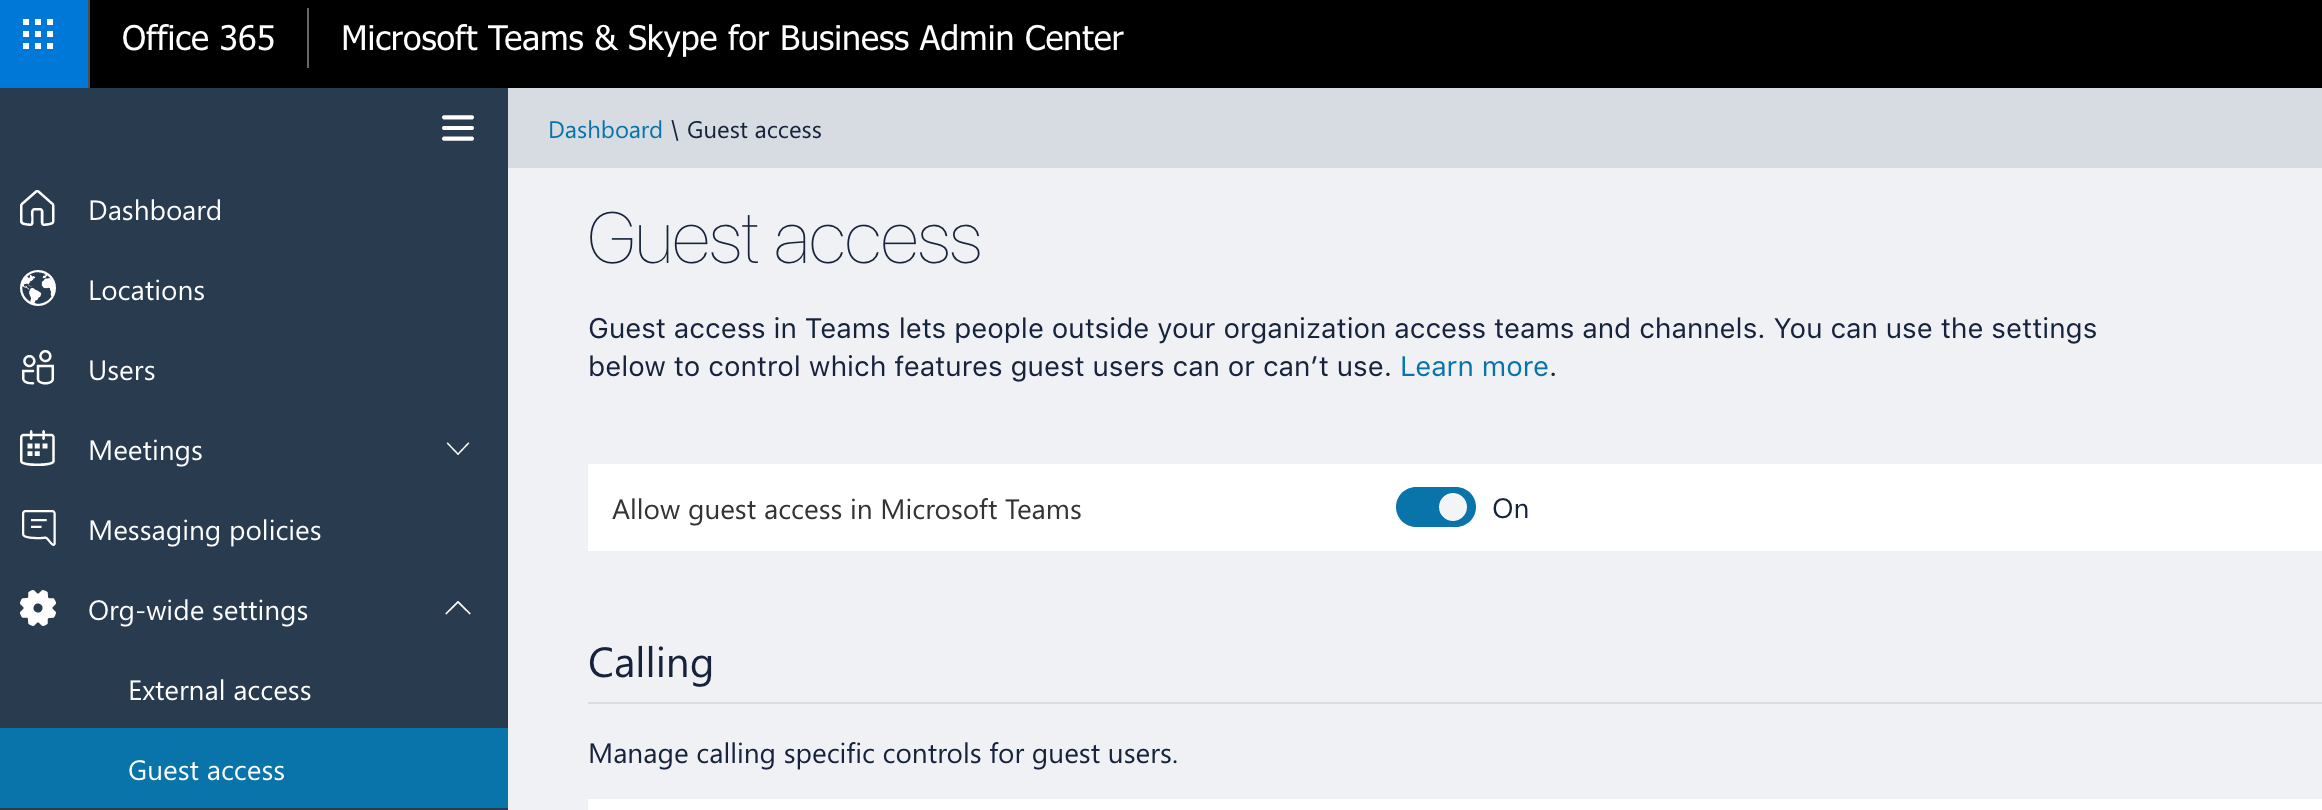 Cannot toggle guest access · Issue #775 · MicrosoftDocs